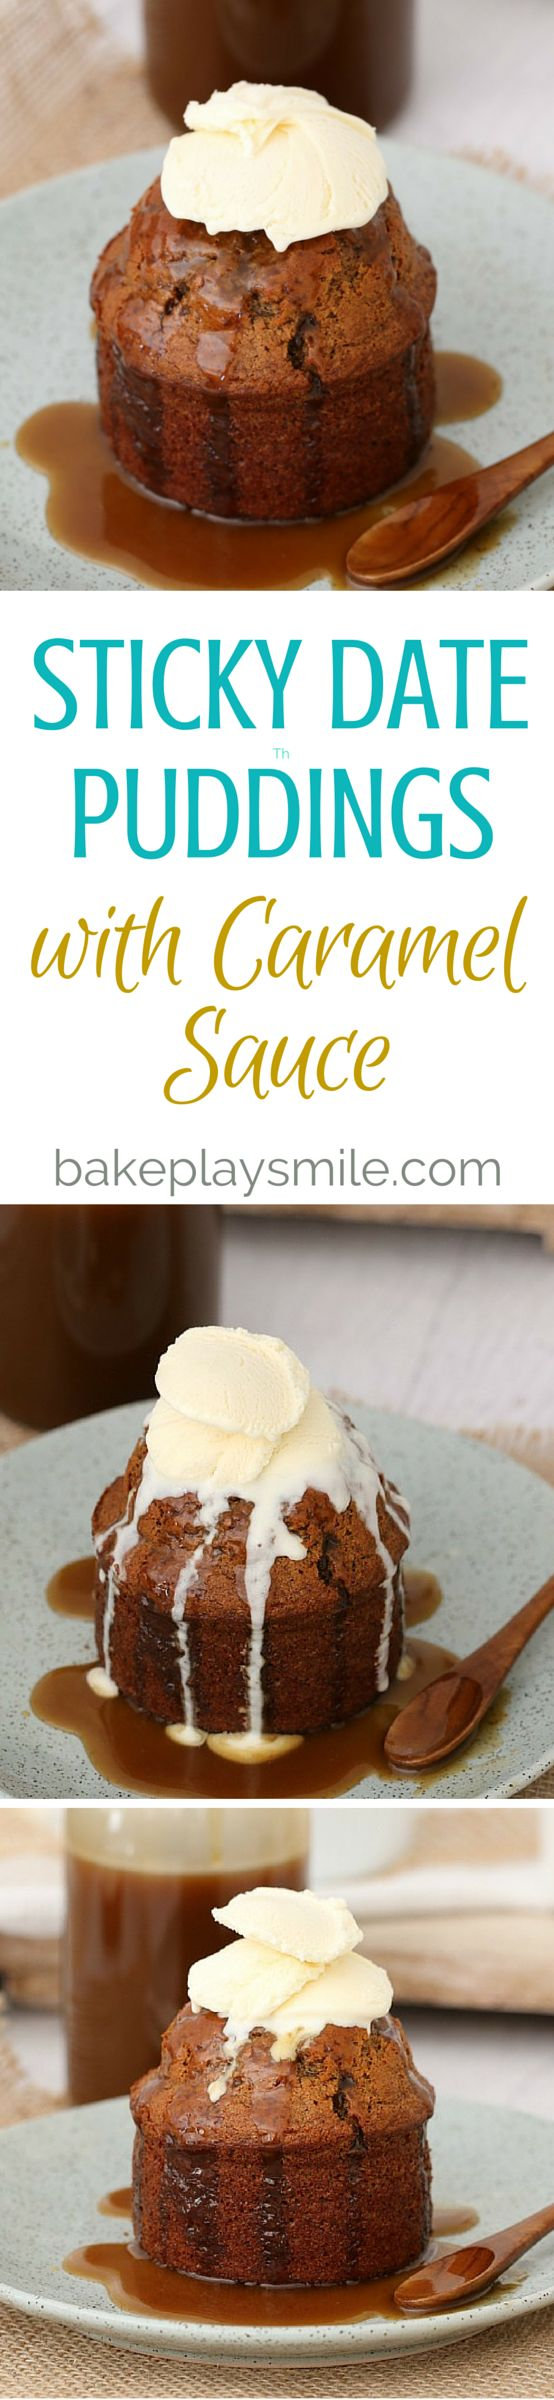 Easy Sticky Date Puddings with Caramel Sauce - Conventional Method